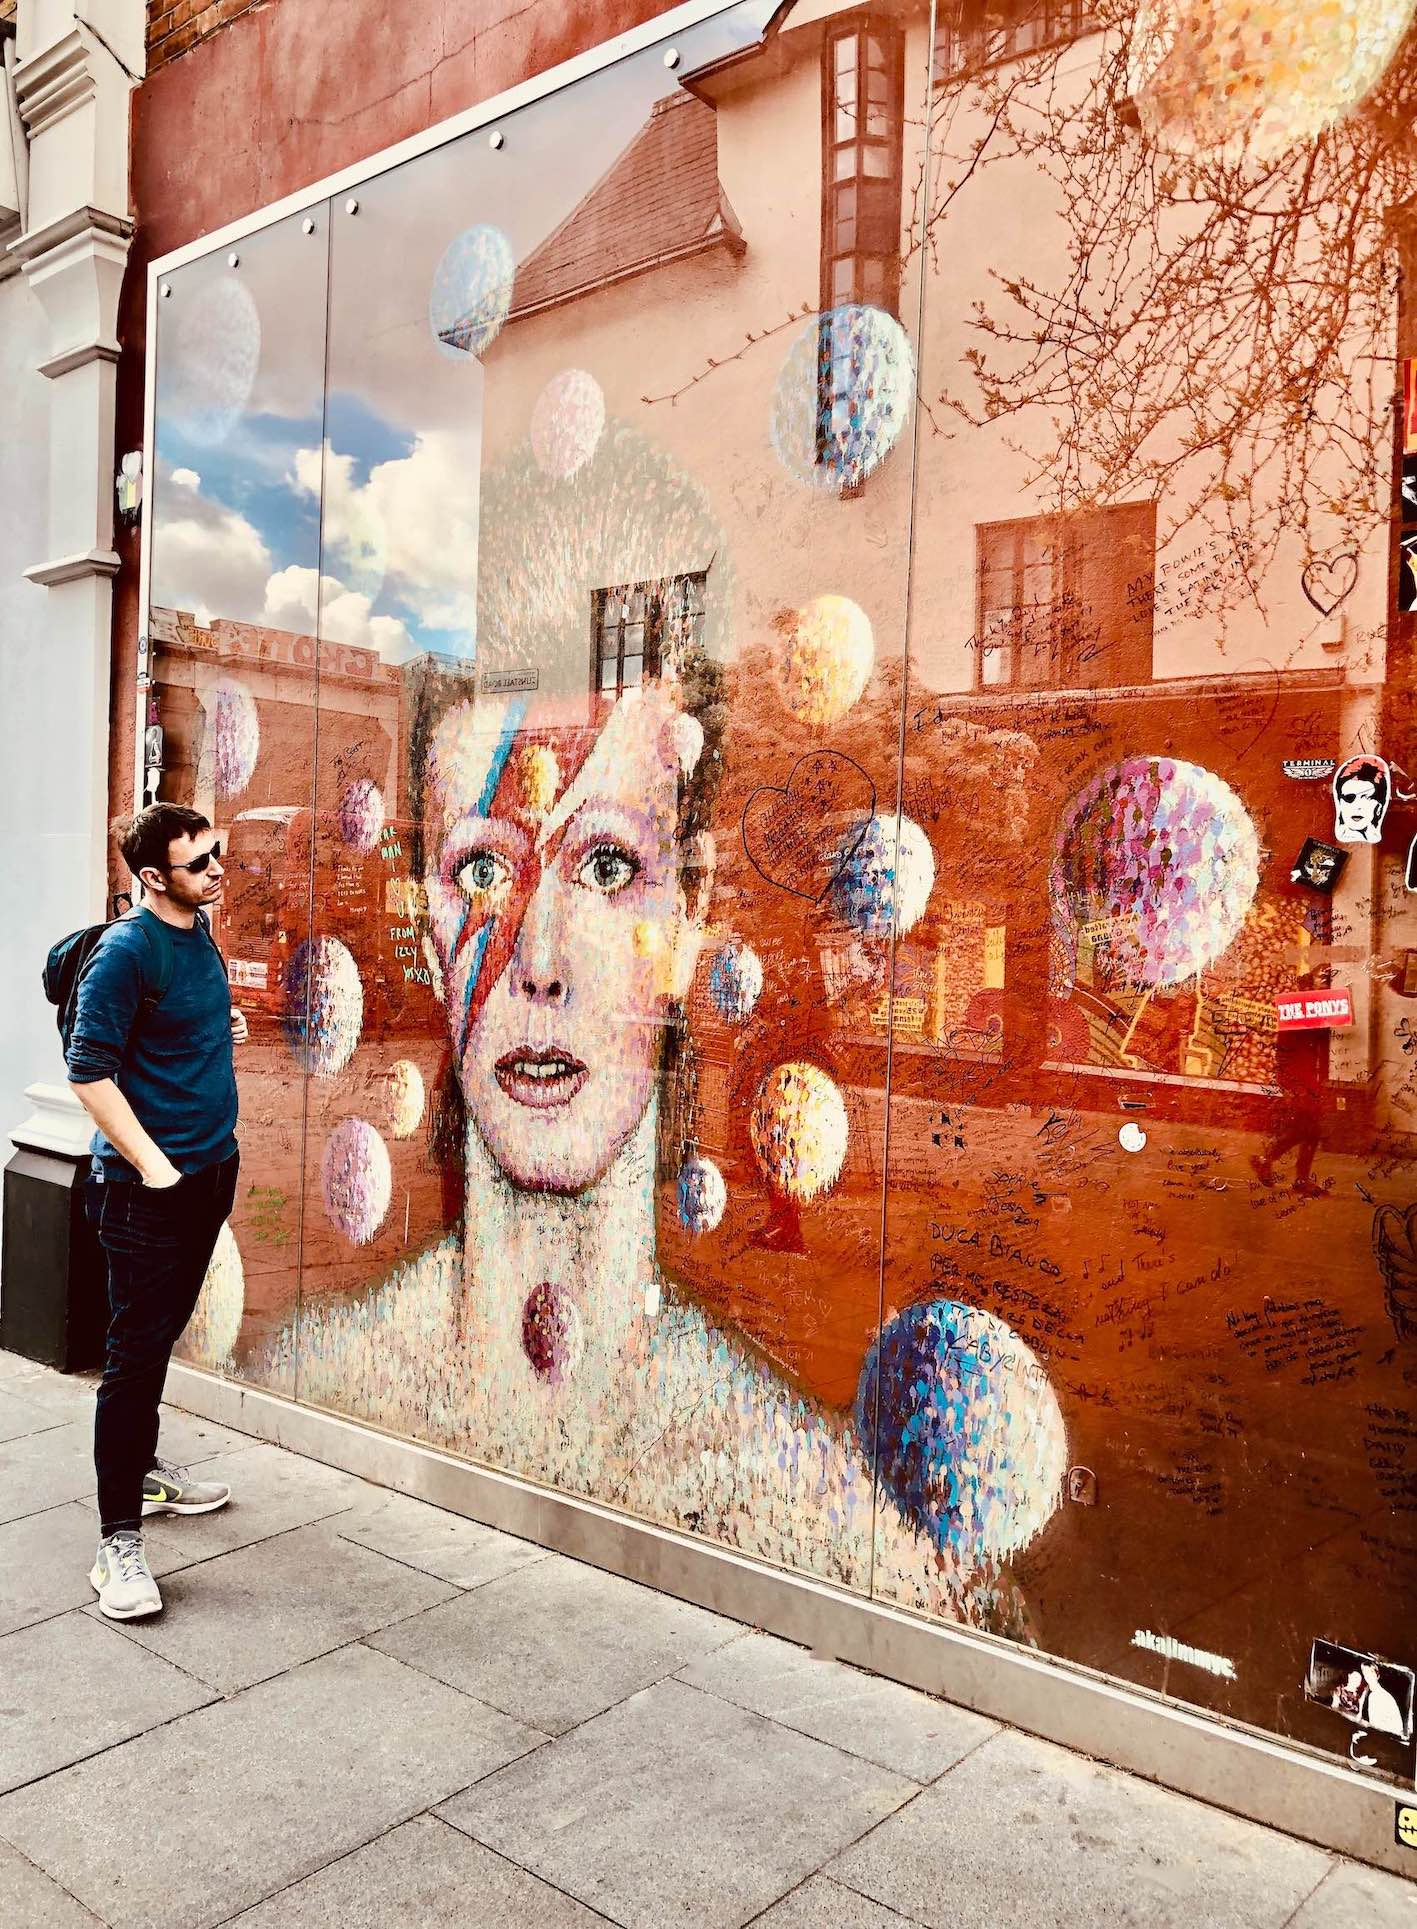 Visiting the David Bowie Mural in London